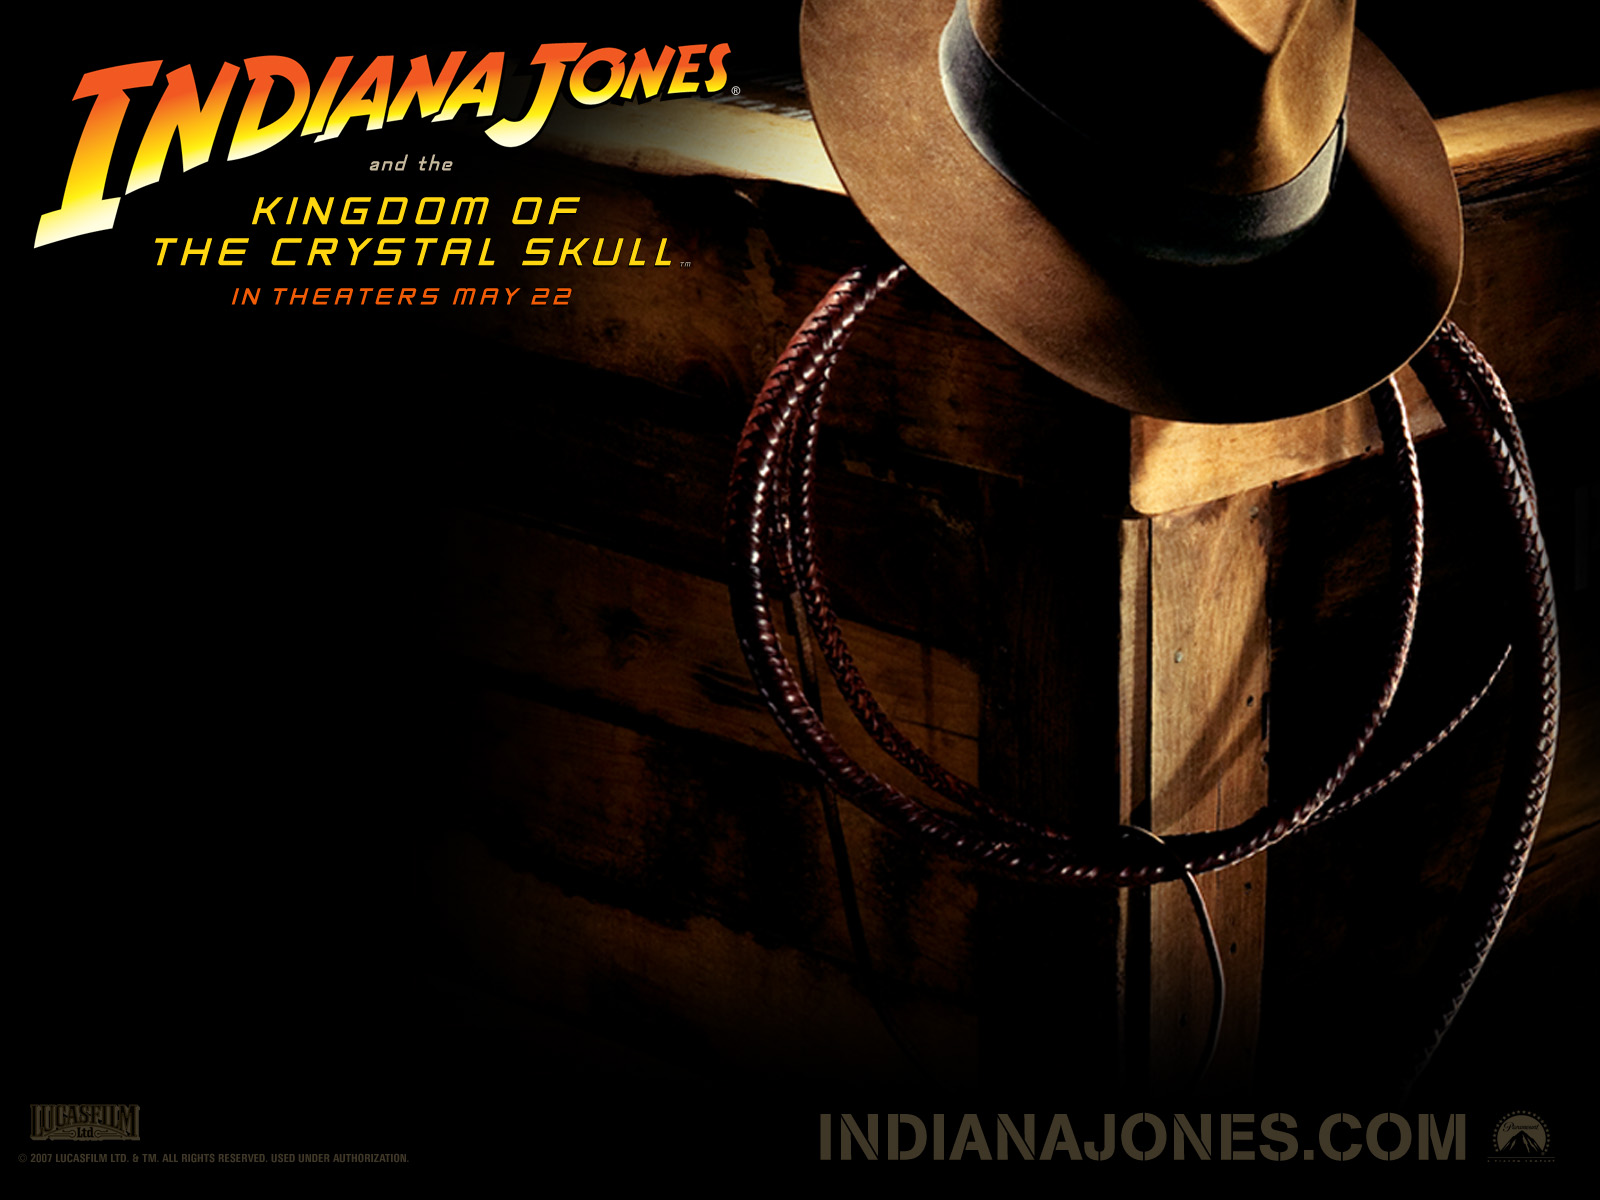 Image Indiana Jones Indiana Jones and the Kingdom of the Crystal Skull film Movies